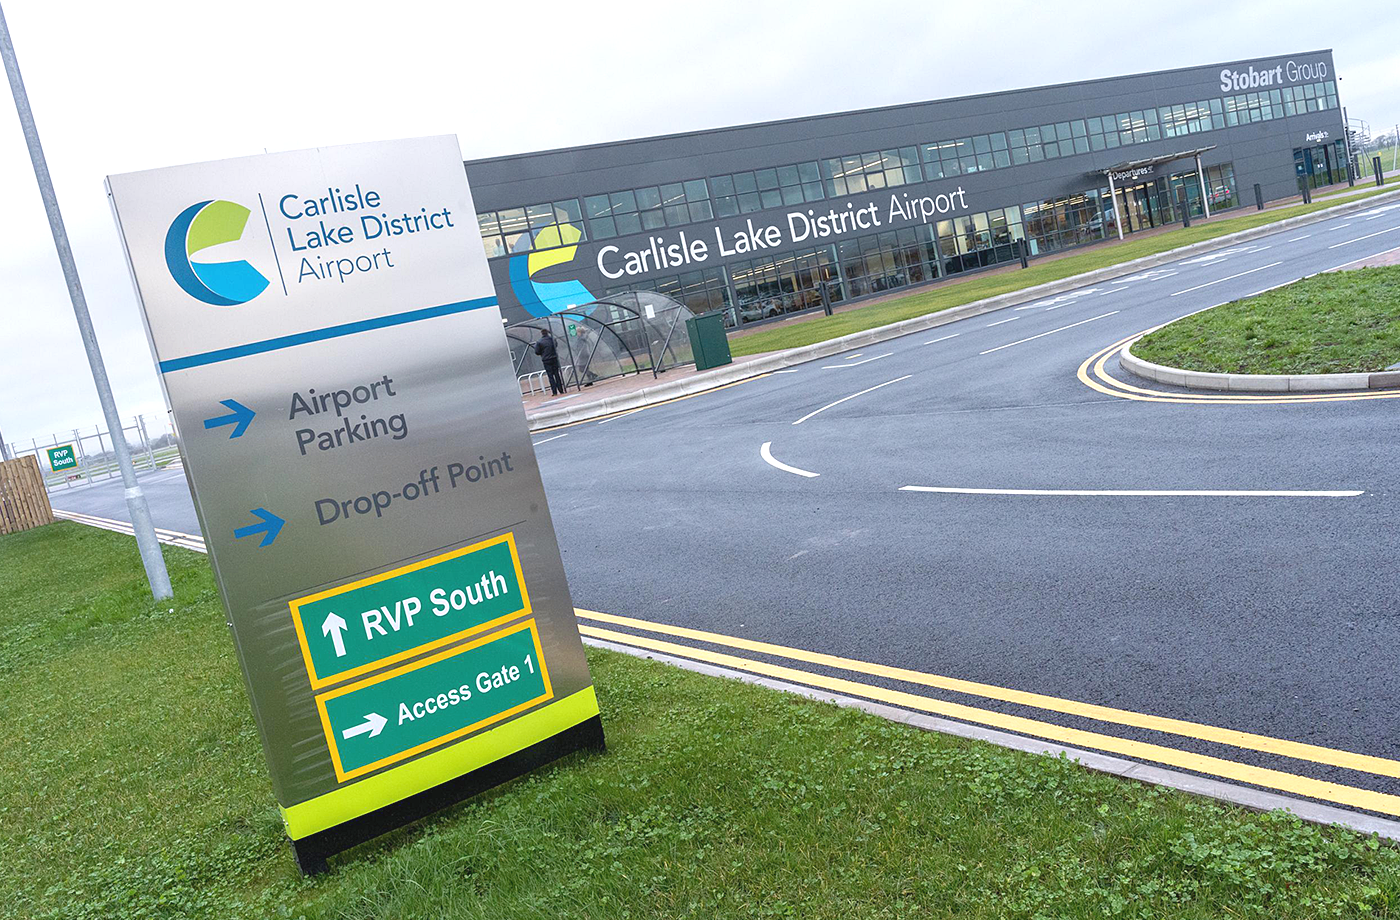 Carlisle Lake District Airport